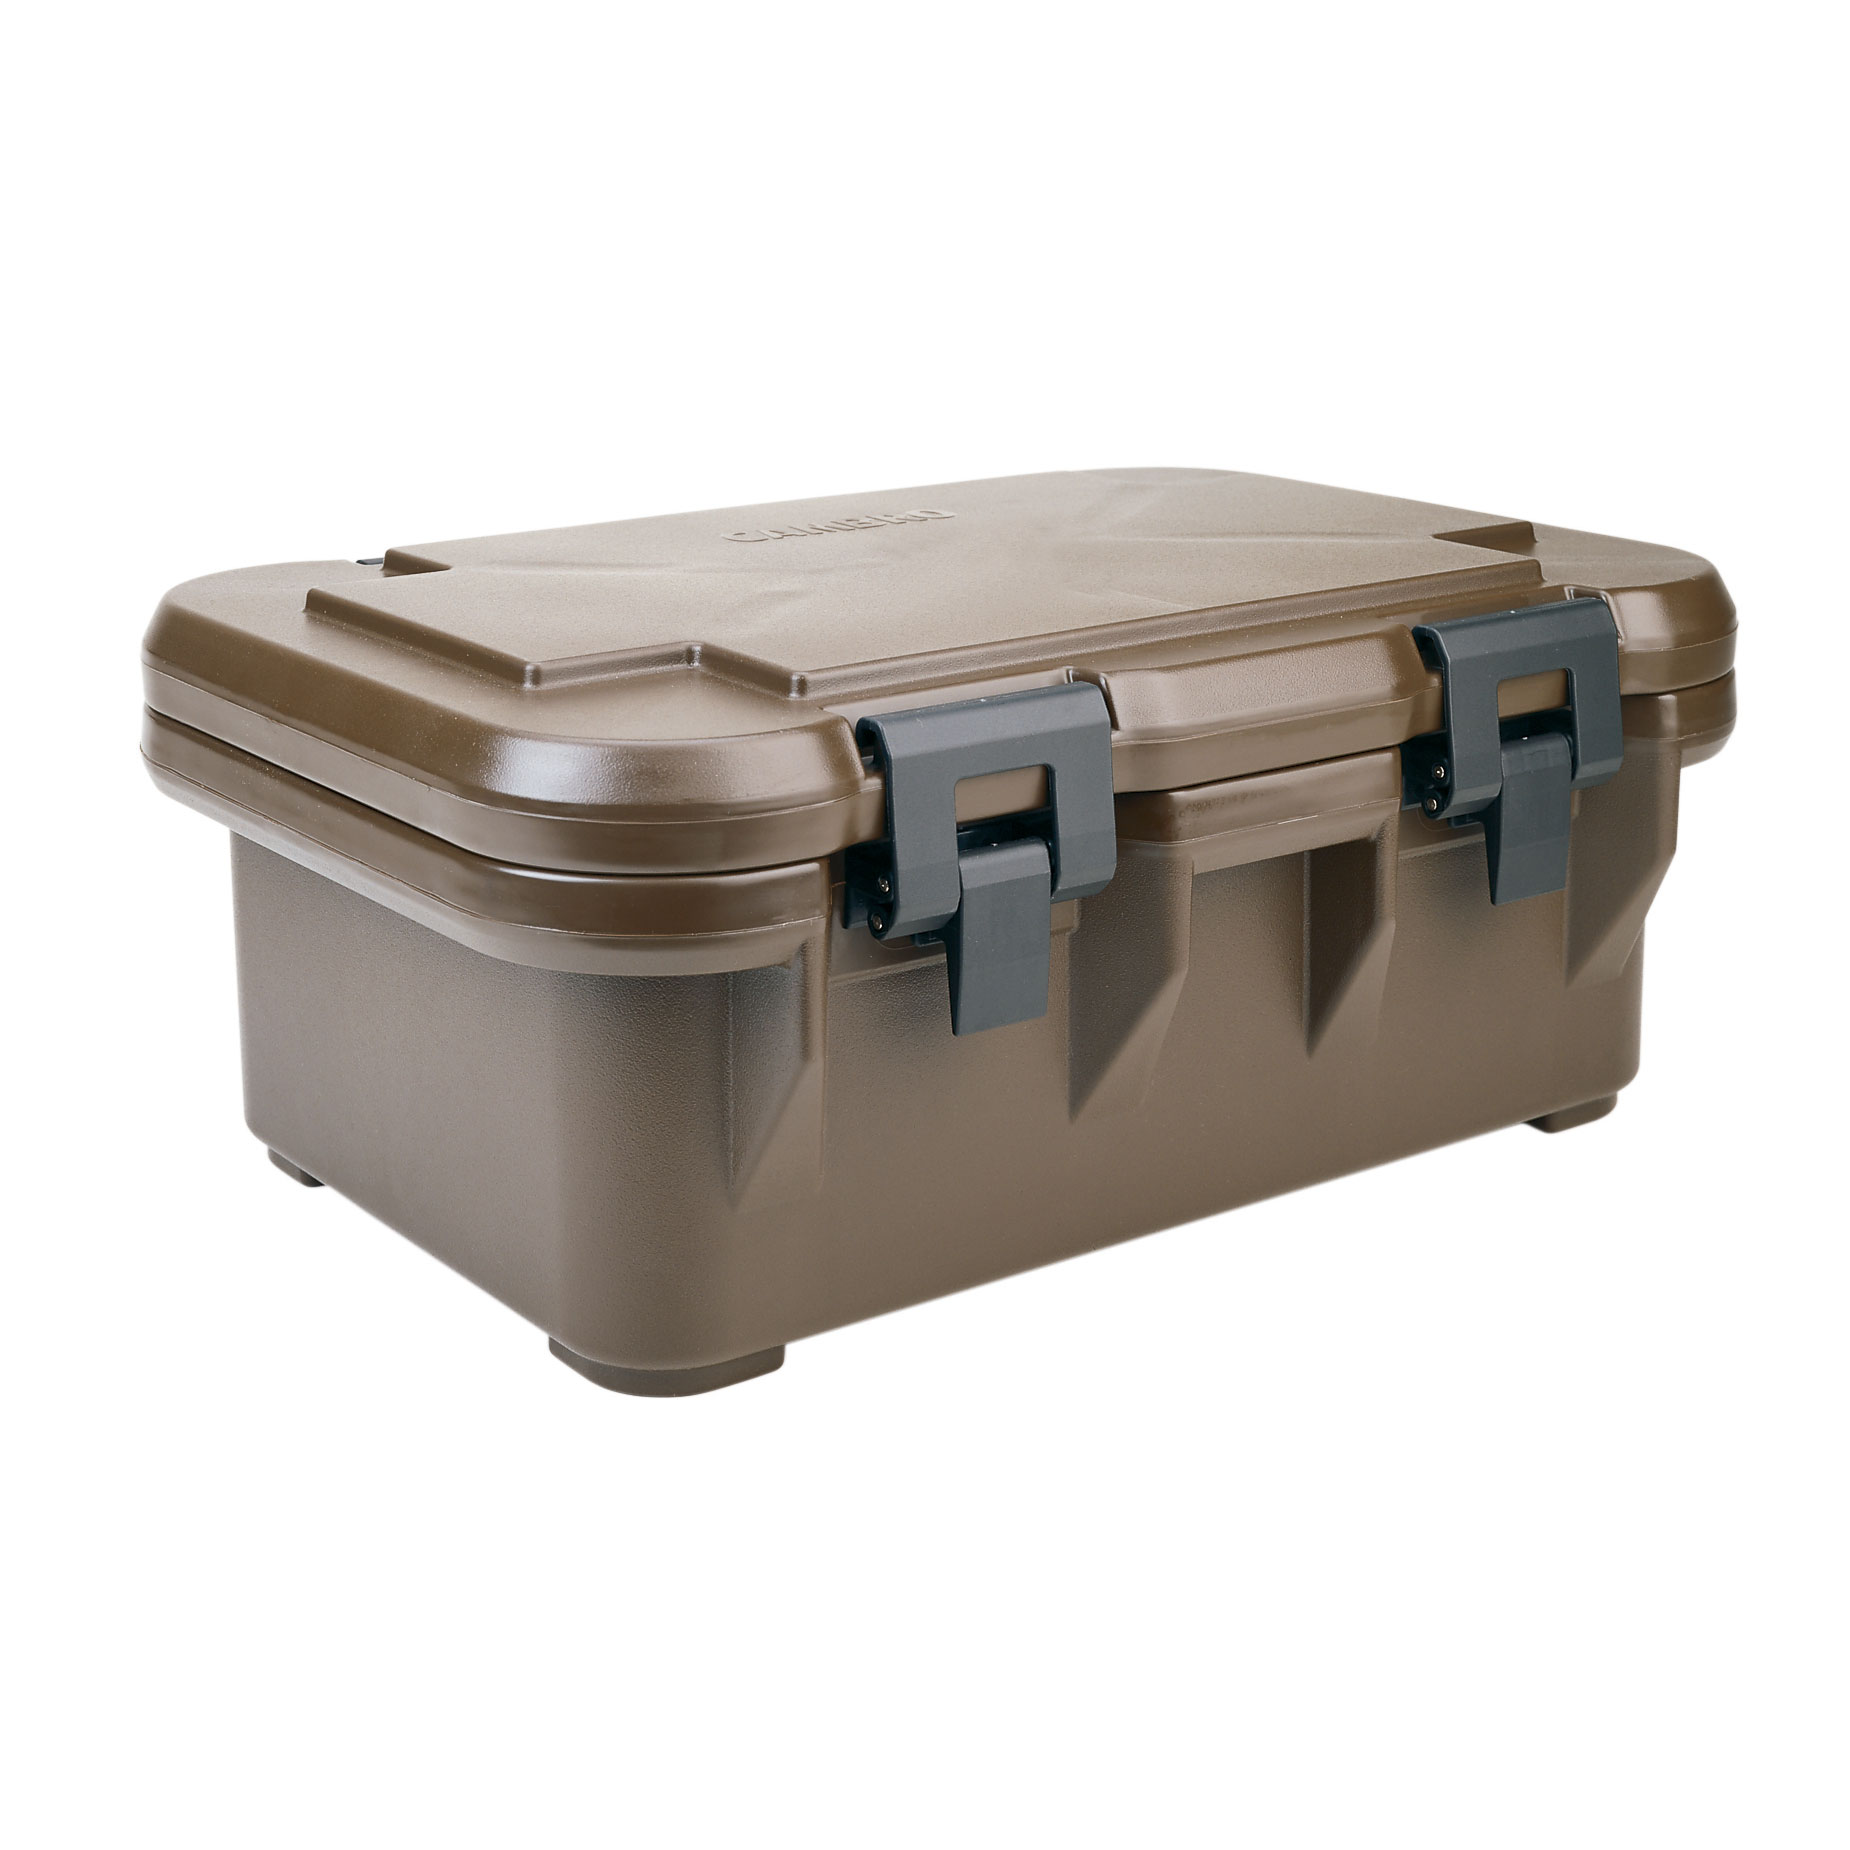 Cambro UPCS160131 food carrier, insulated plastic